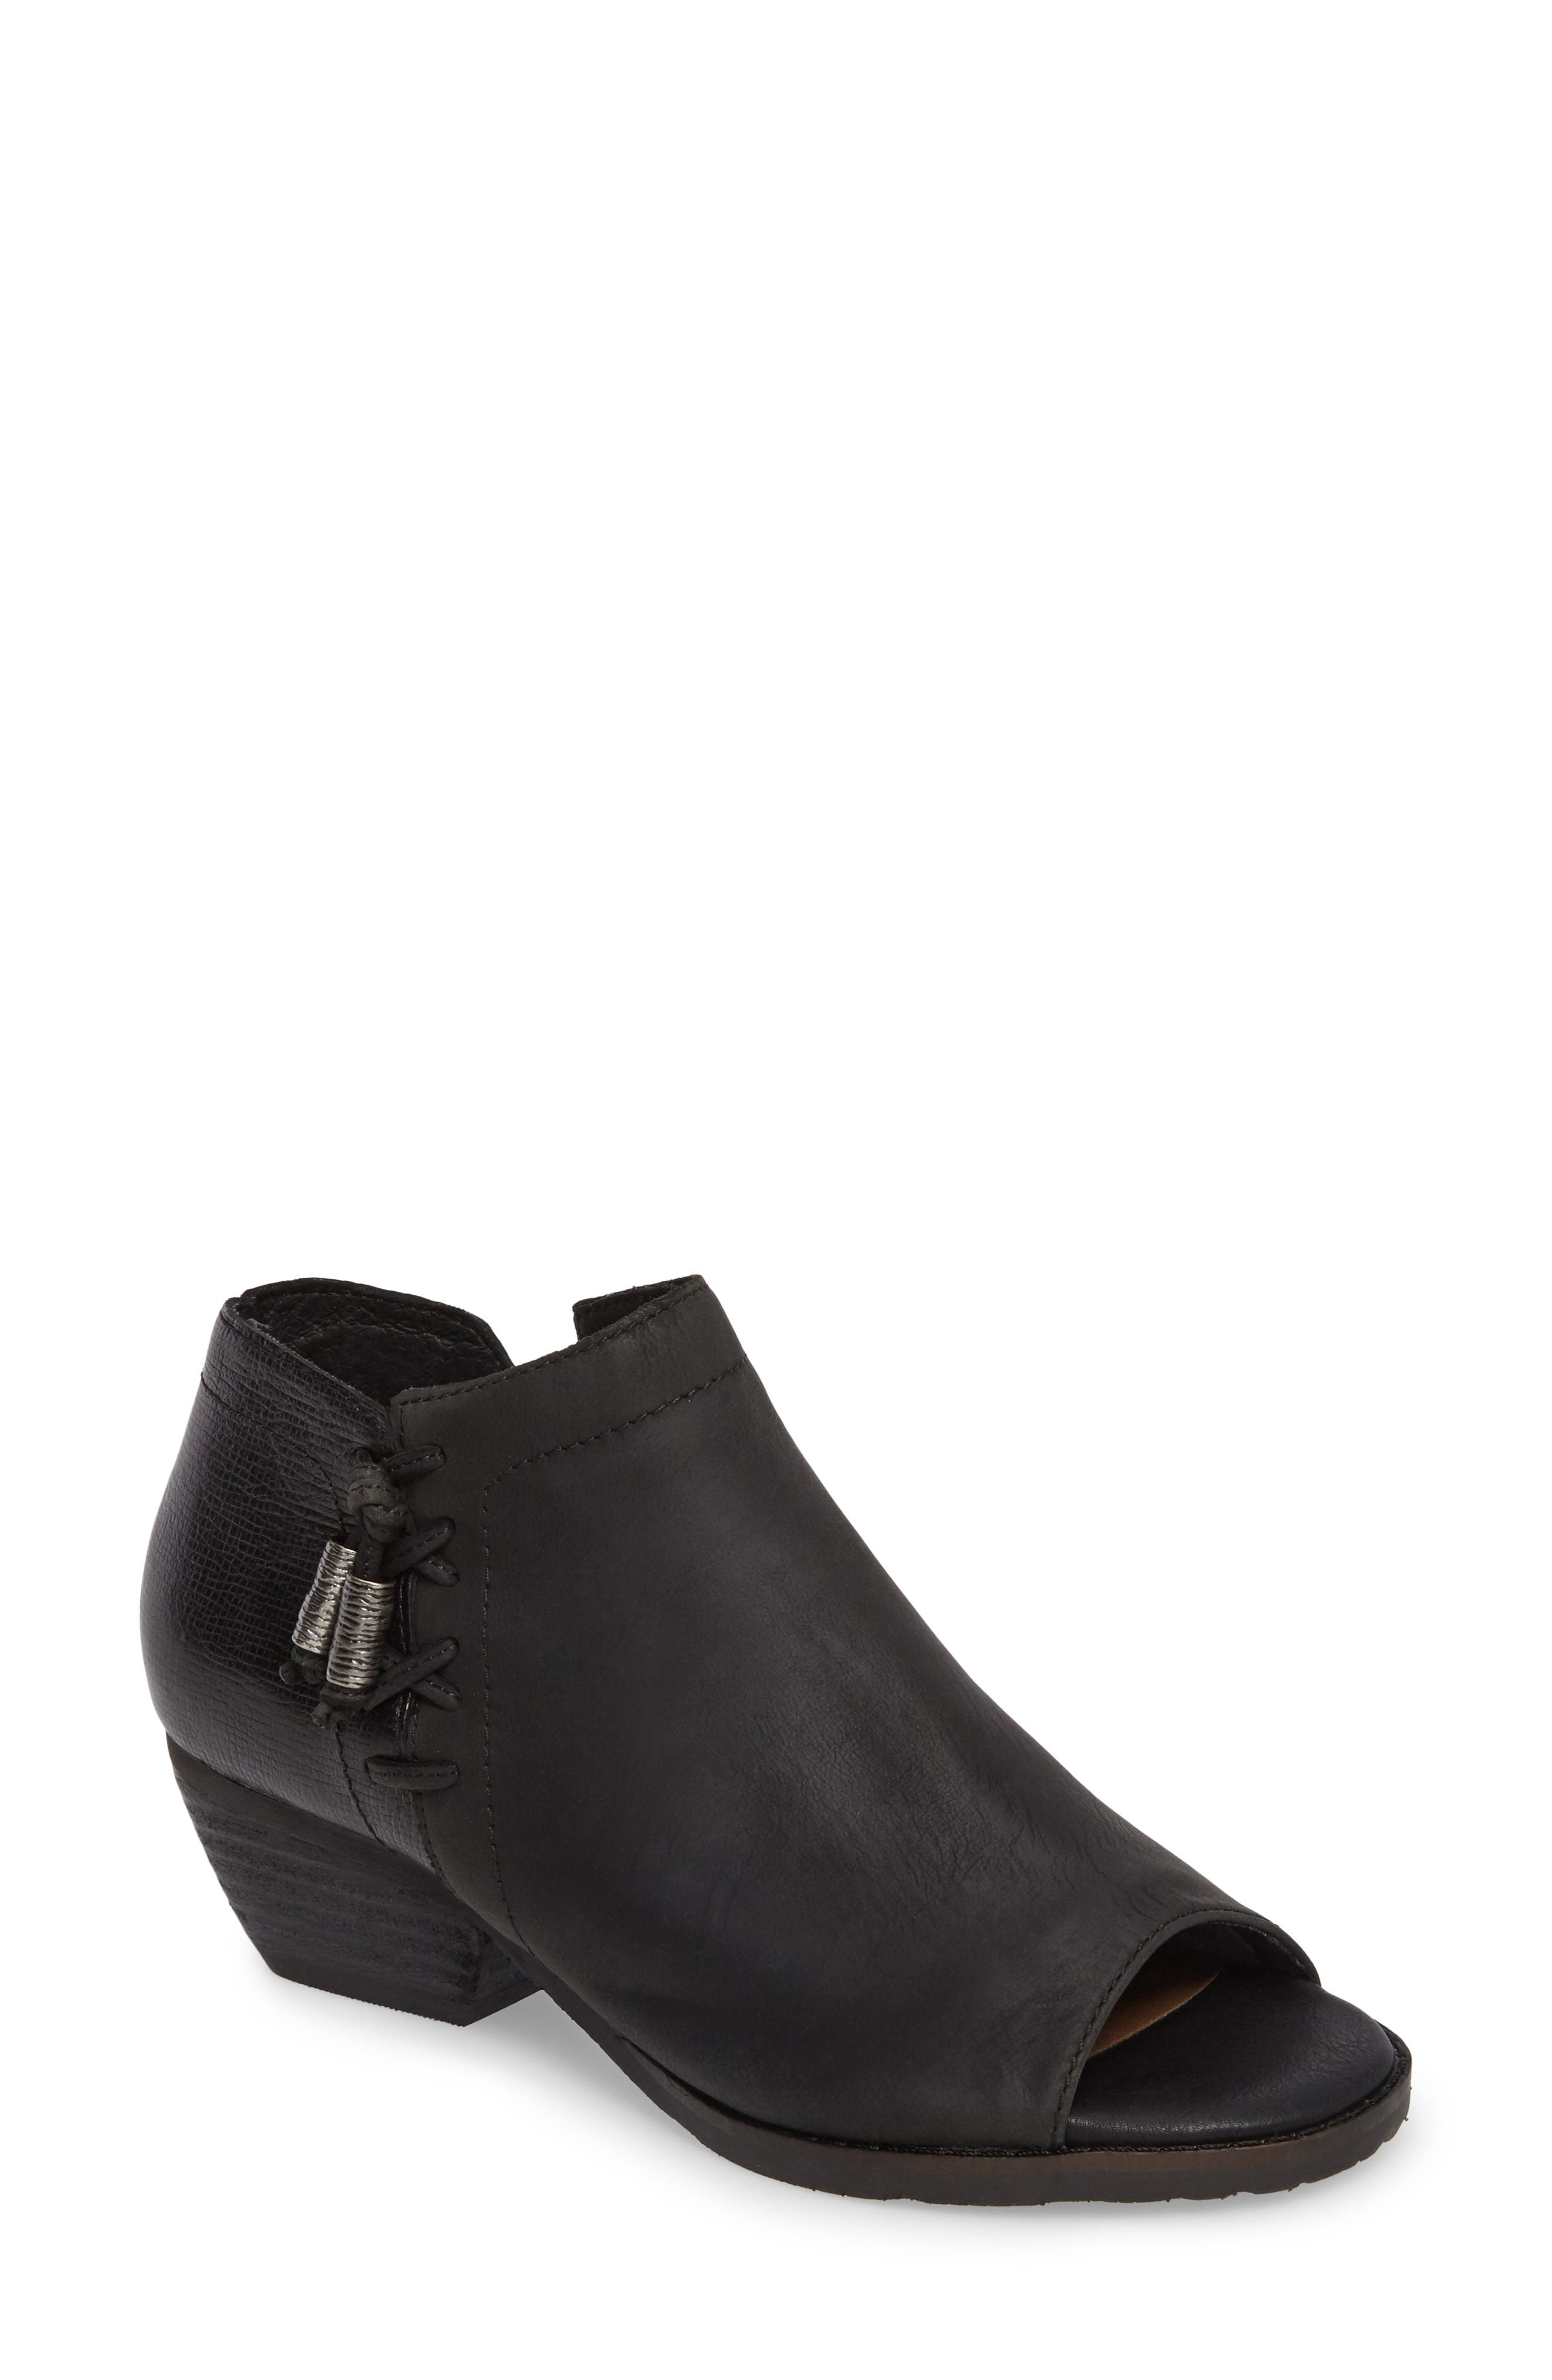 Truckage Open Toe Bootie,                             Main thumbnail 1, color,                             Black Leather